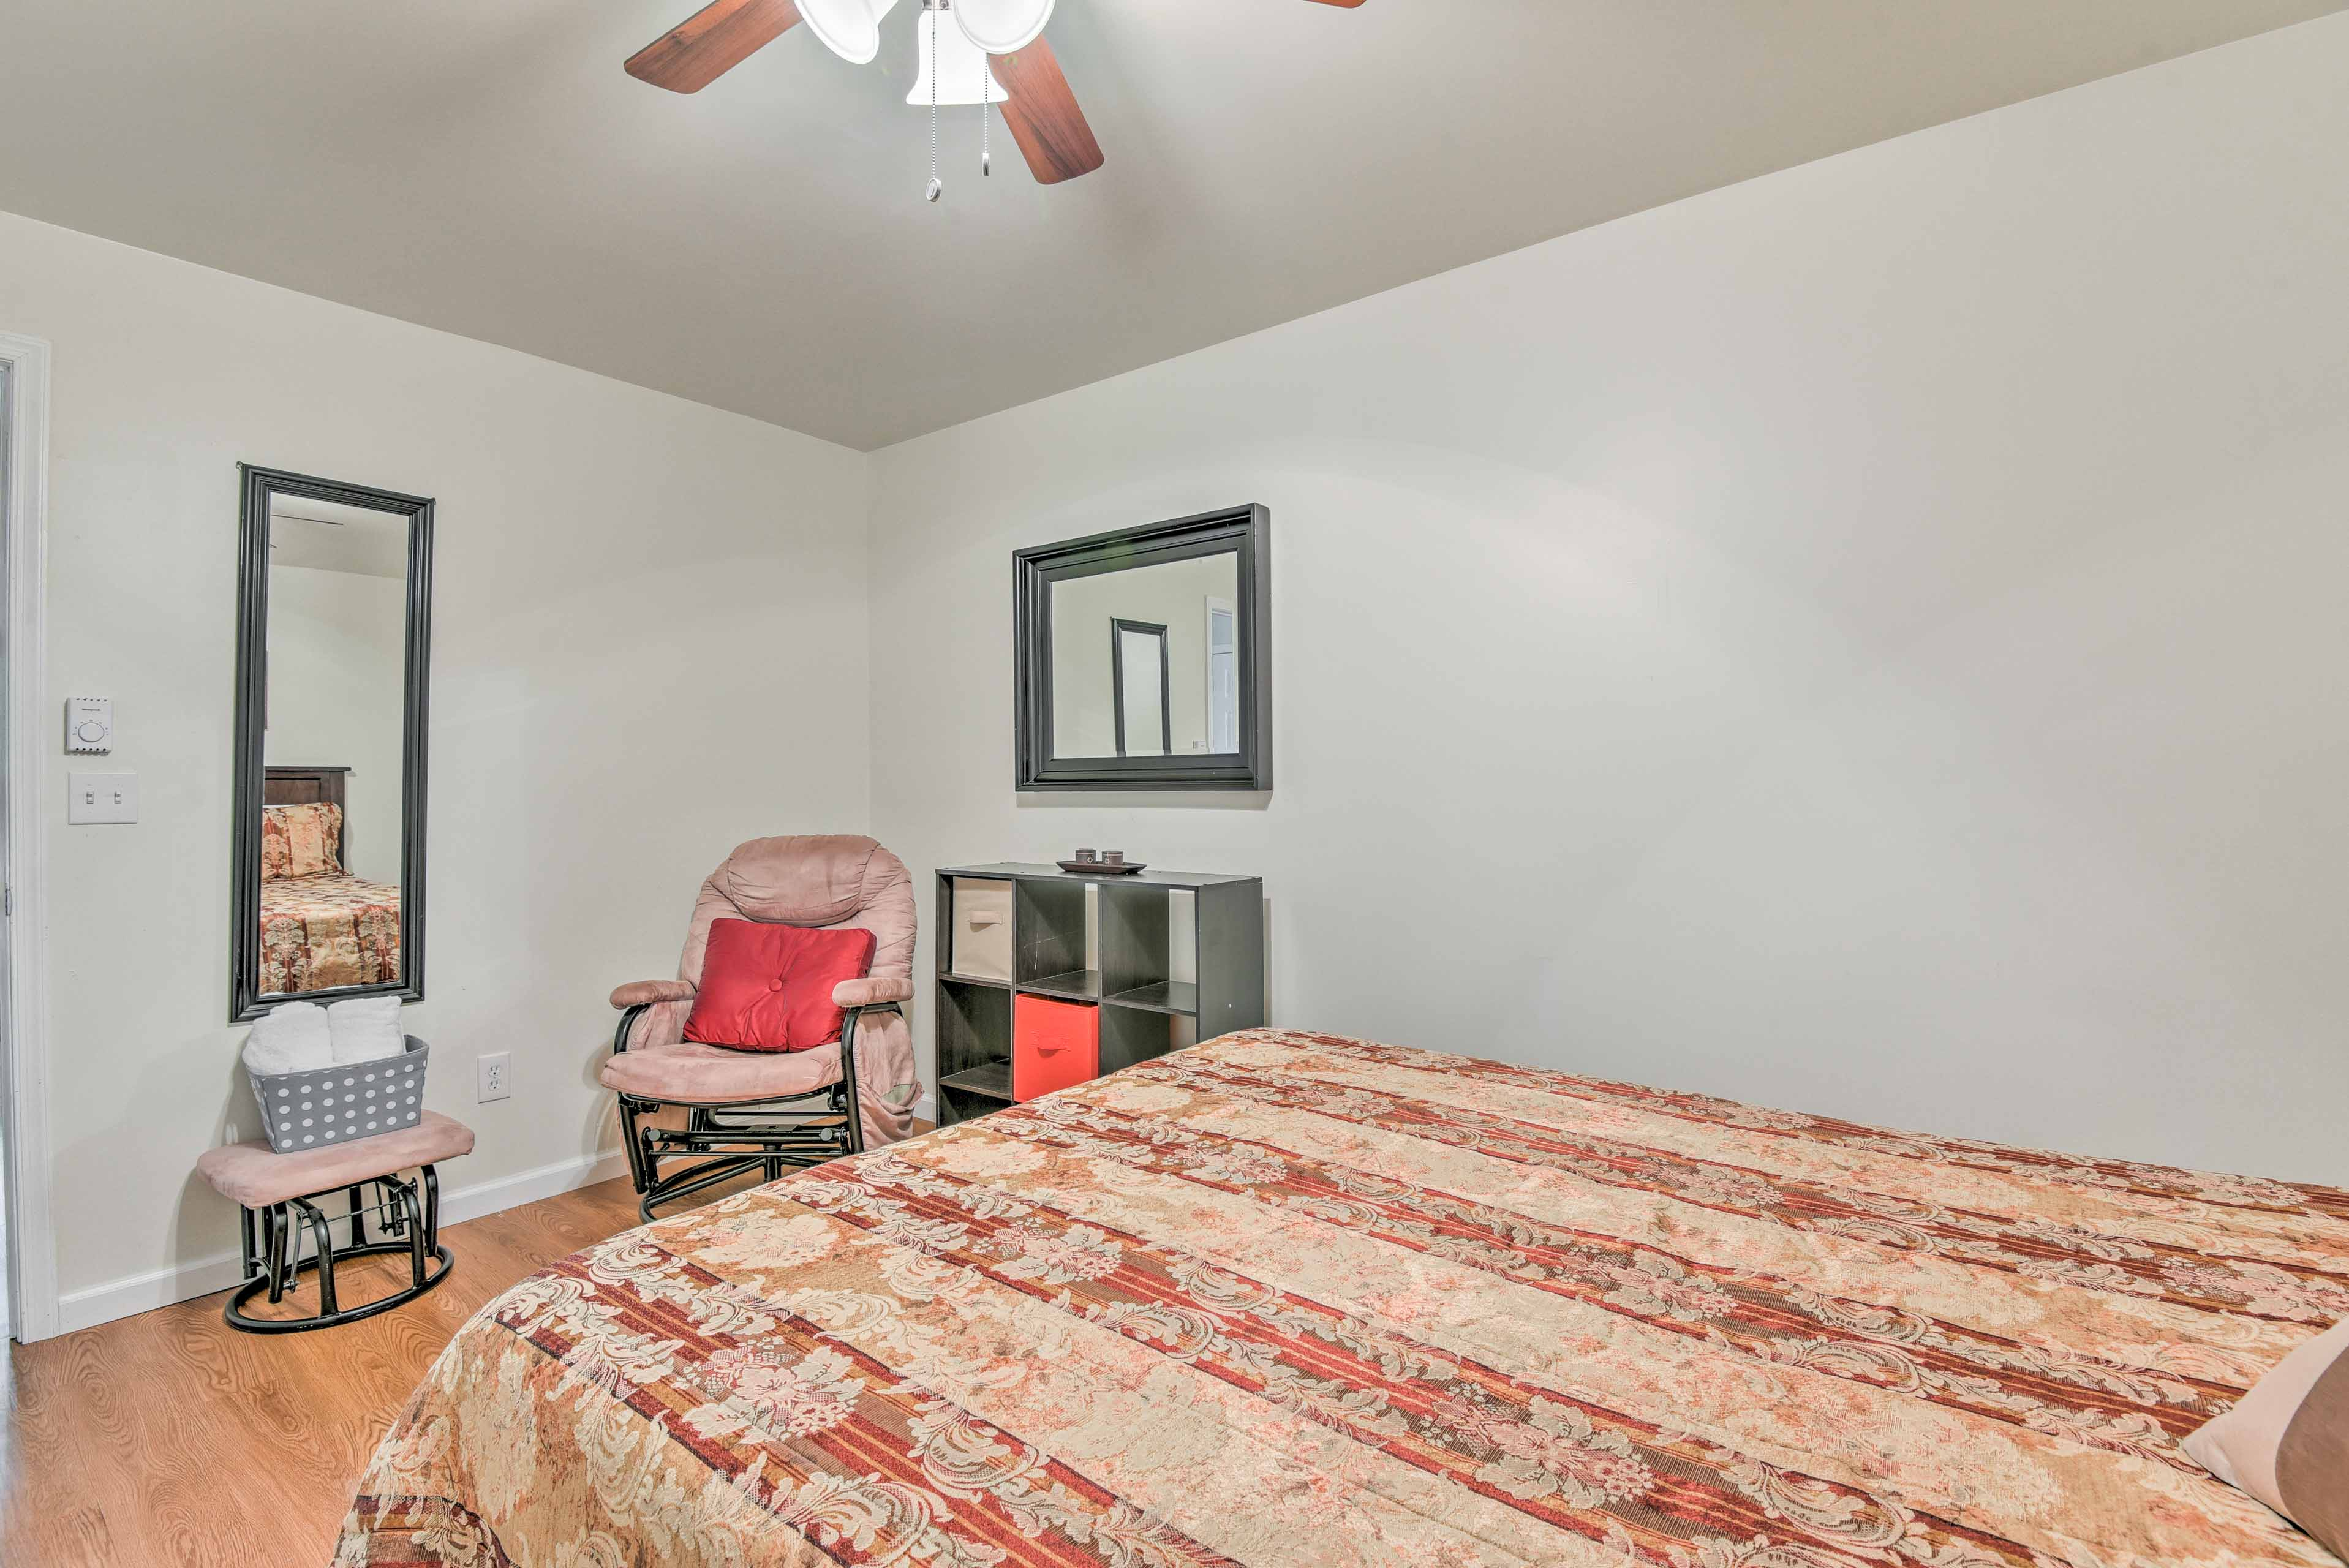 Enjoy the peace and quiet of the basement bedroom.